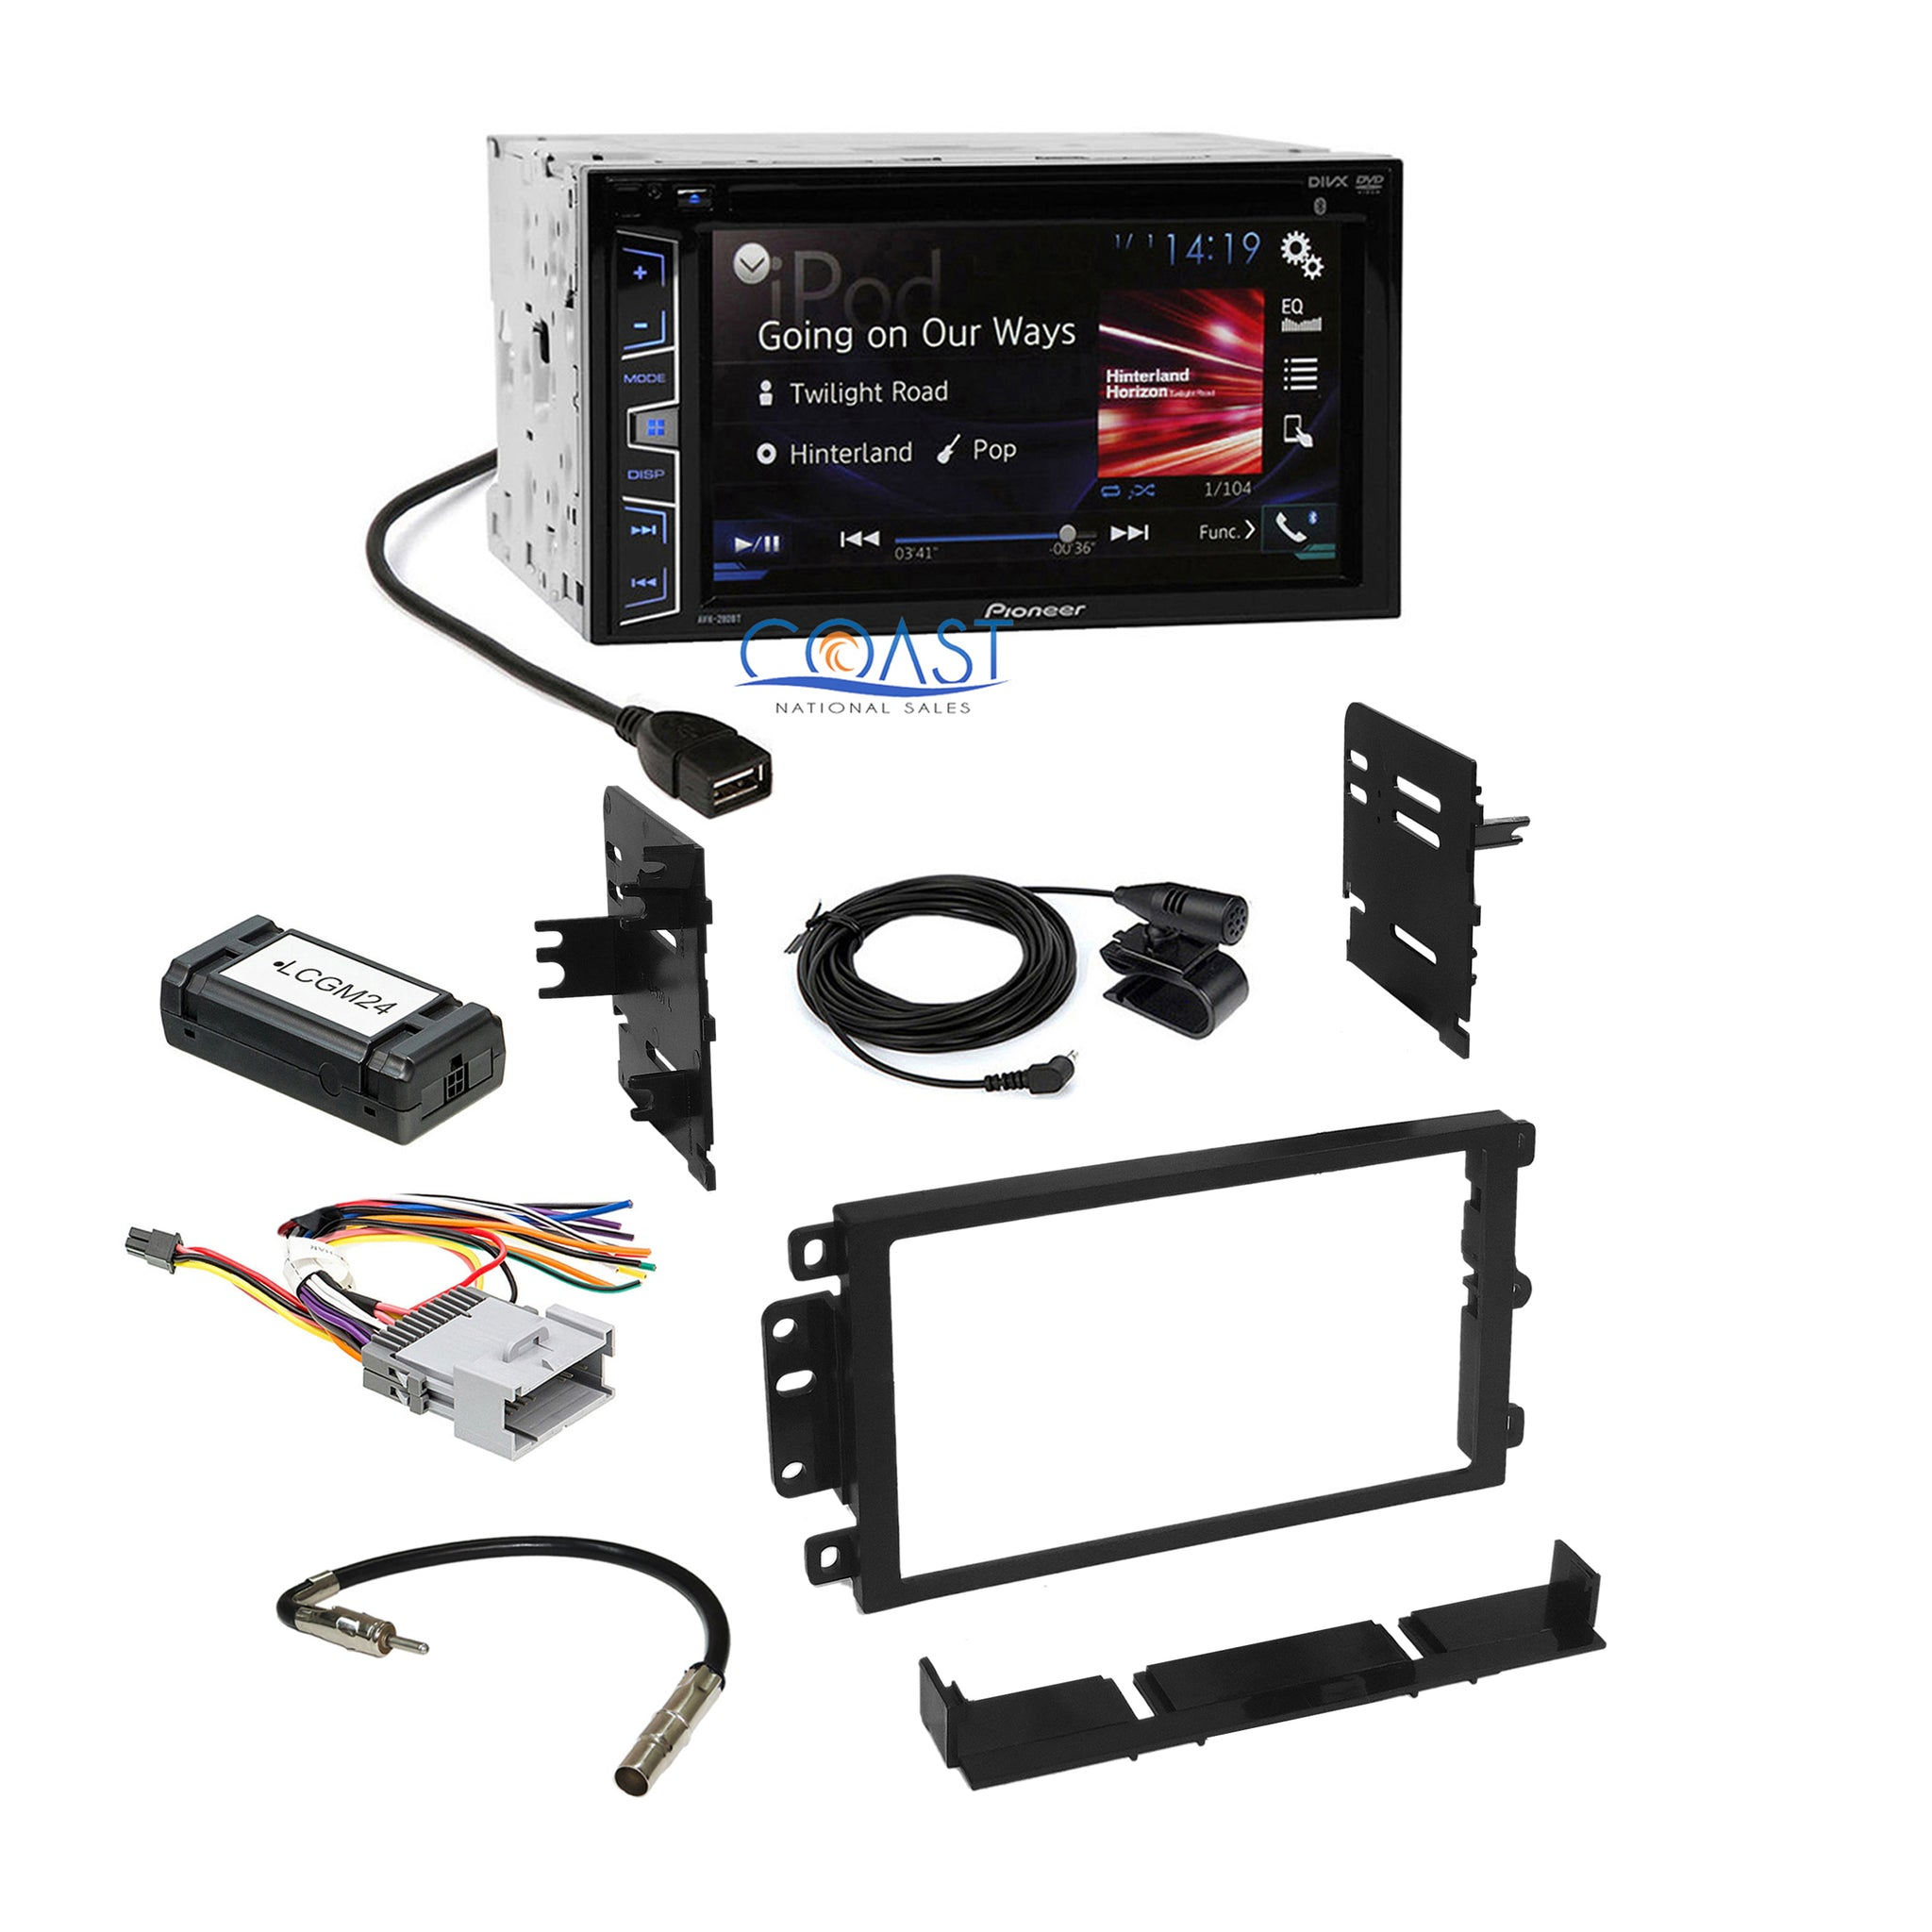 Fits GMC Envoy 2002-2009 Double DIN Aftermarket Harness Radio Install Dash Kit